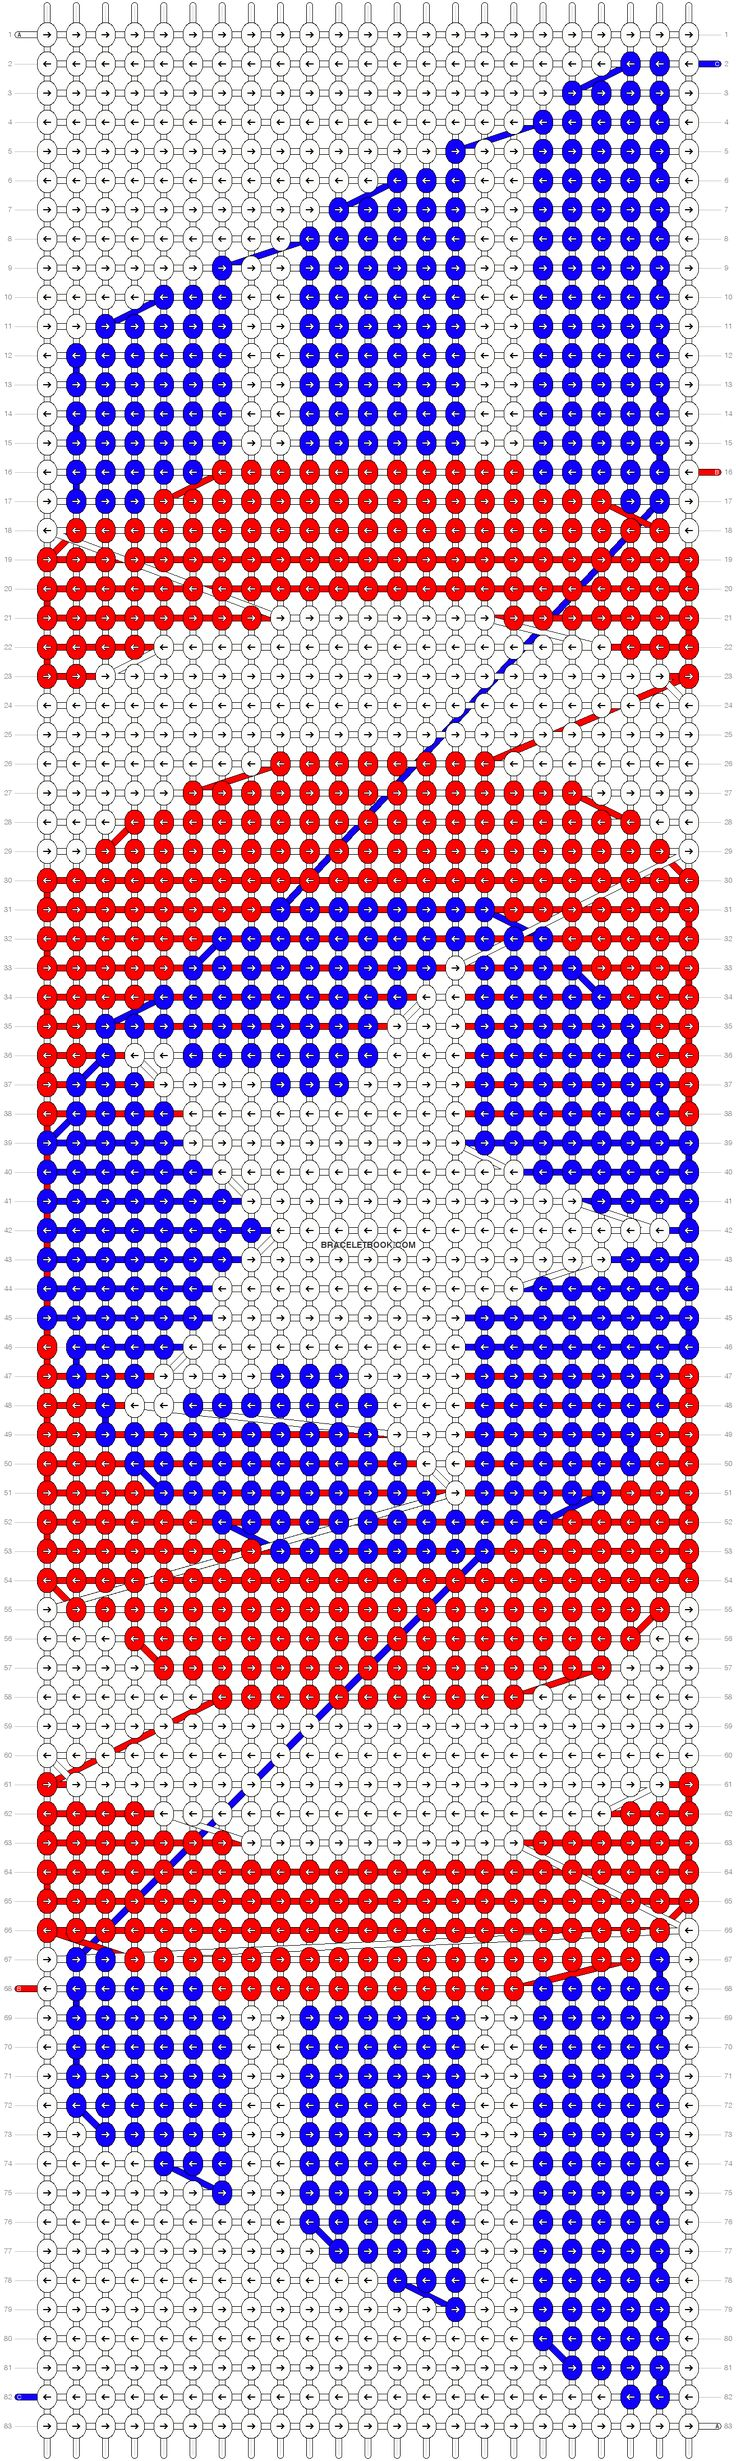 Alpha Pattern #8733 added by szrene99